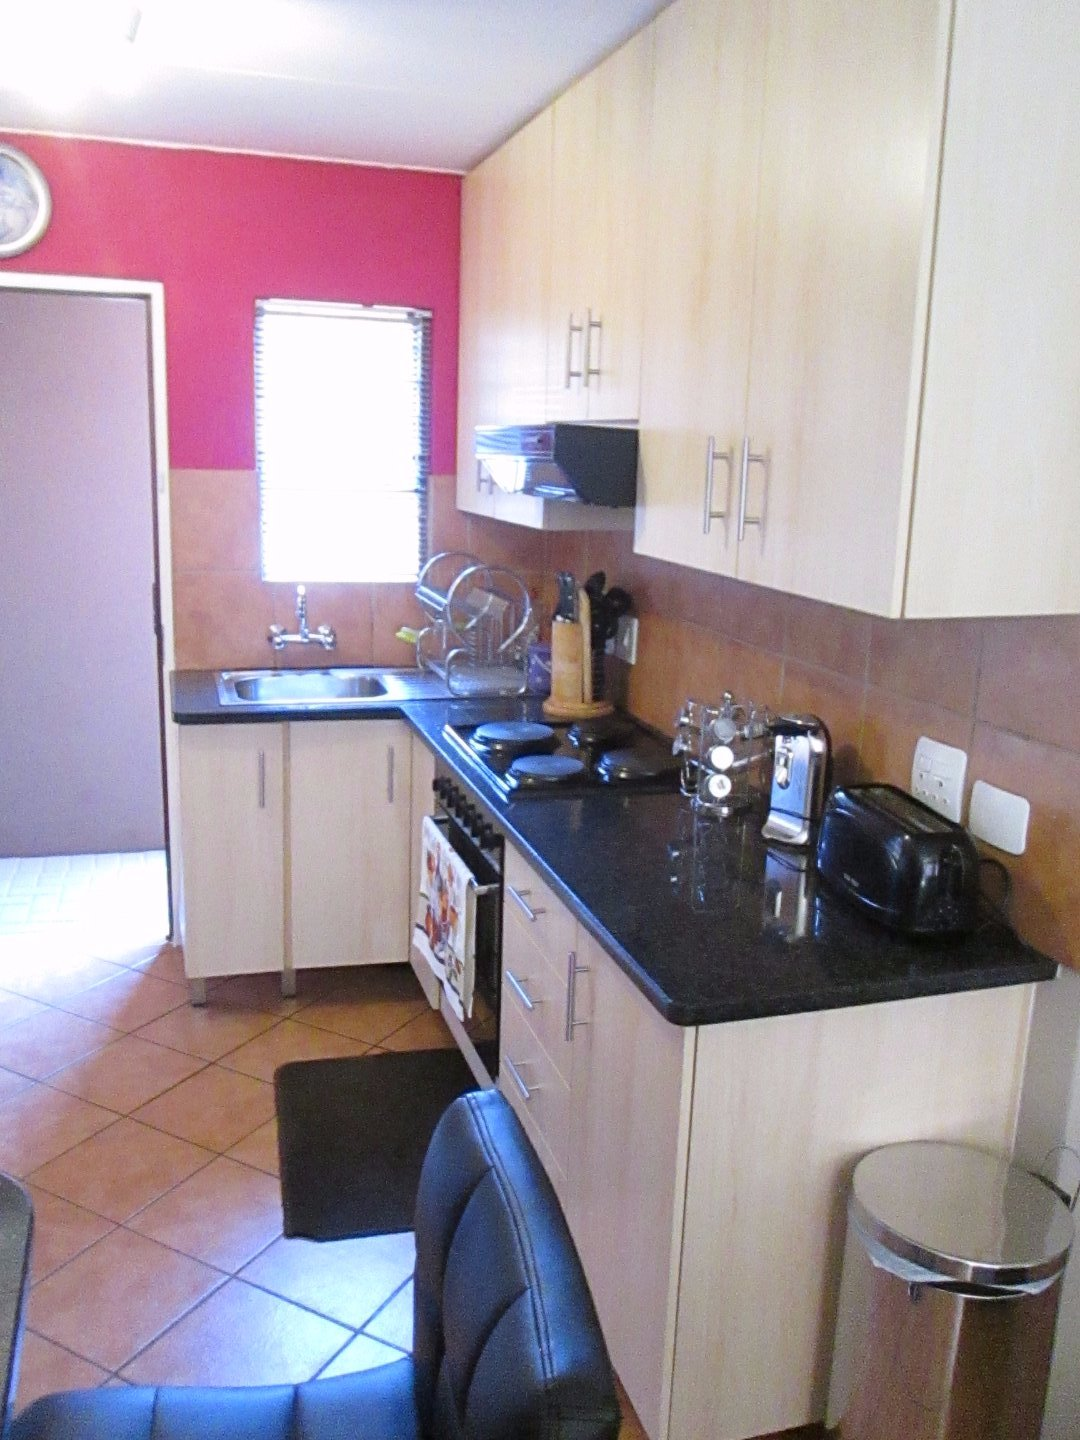 Albertsdal property for sale. Ref No: 13552410. Picture no 12